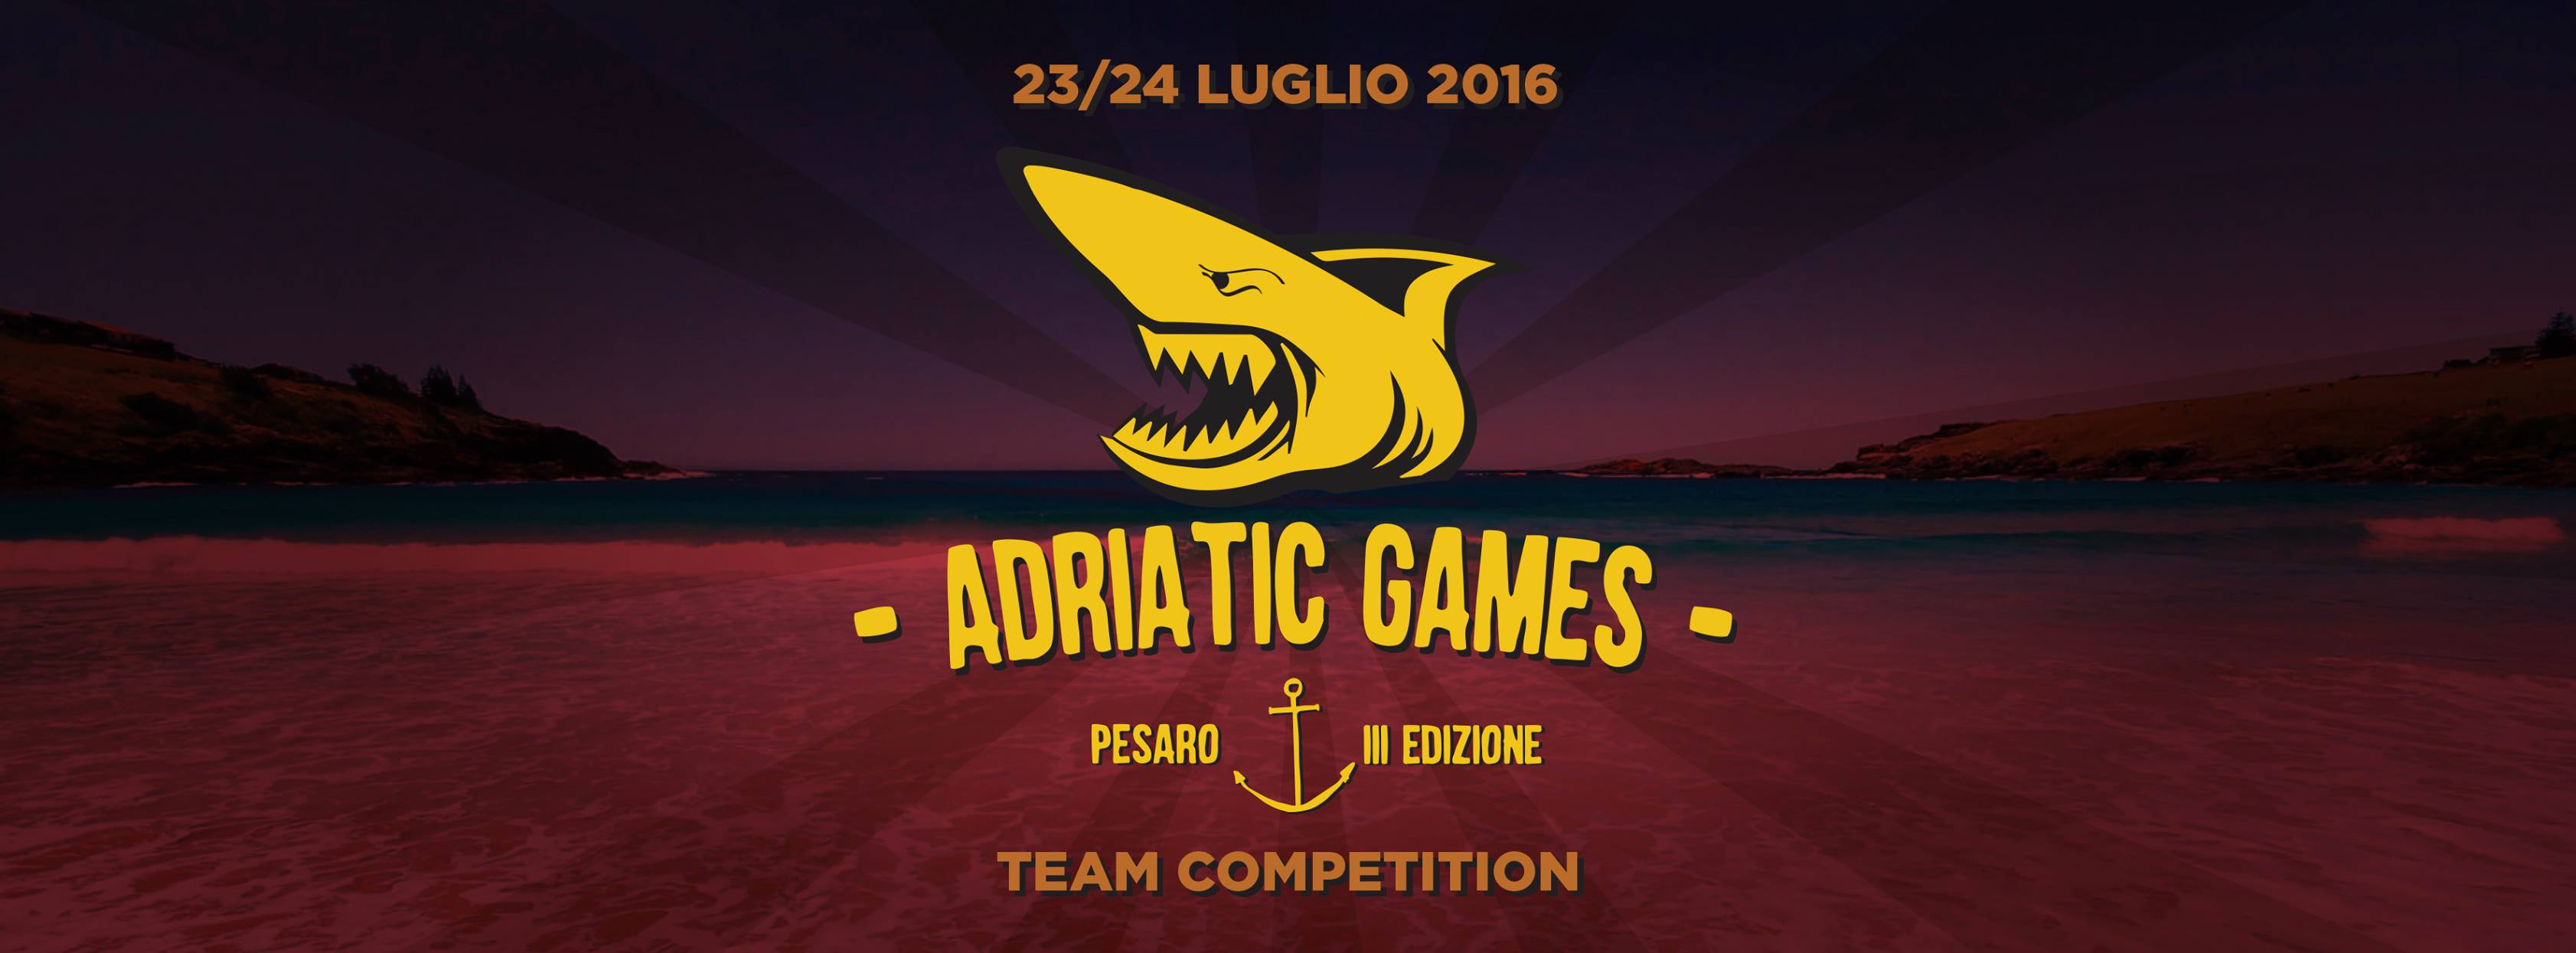 adriatic games 2016 crossfit